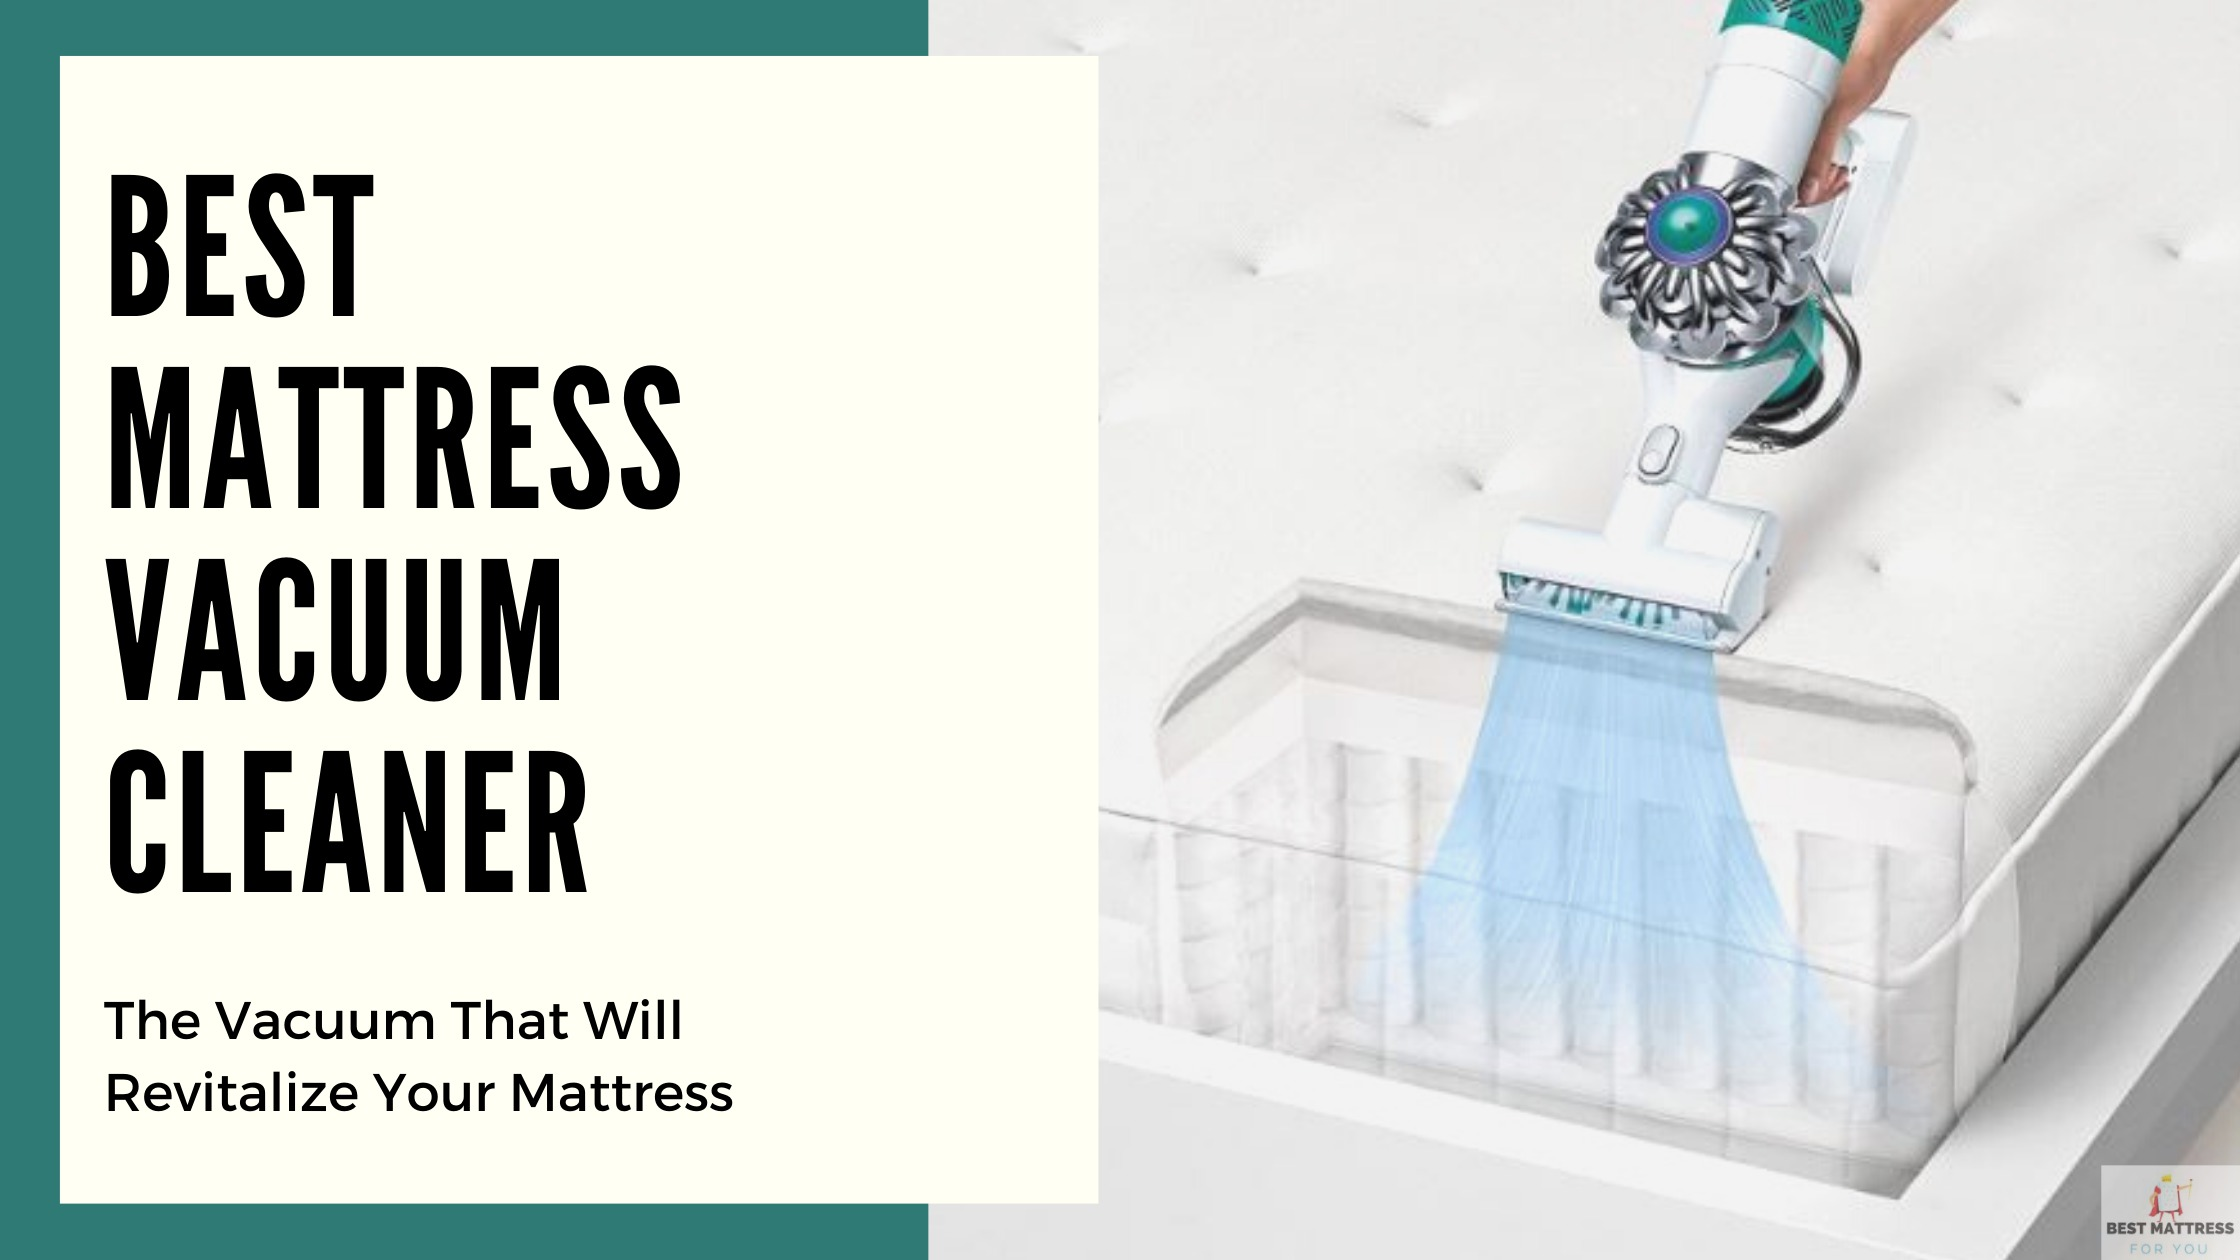 Best Mattress Vacuum Cleaner